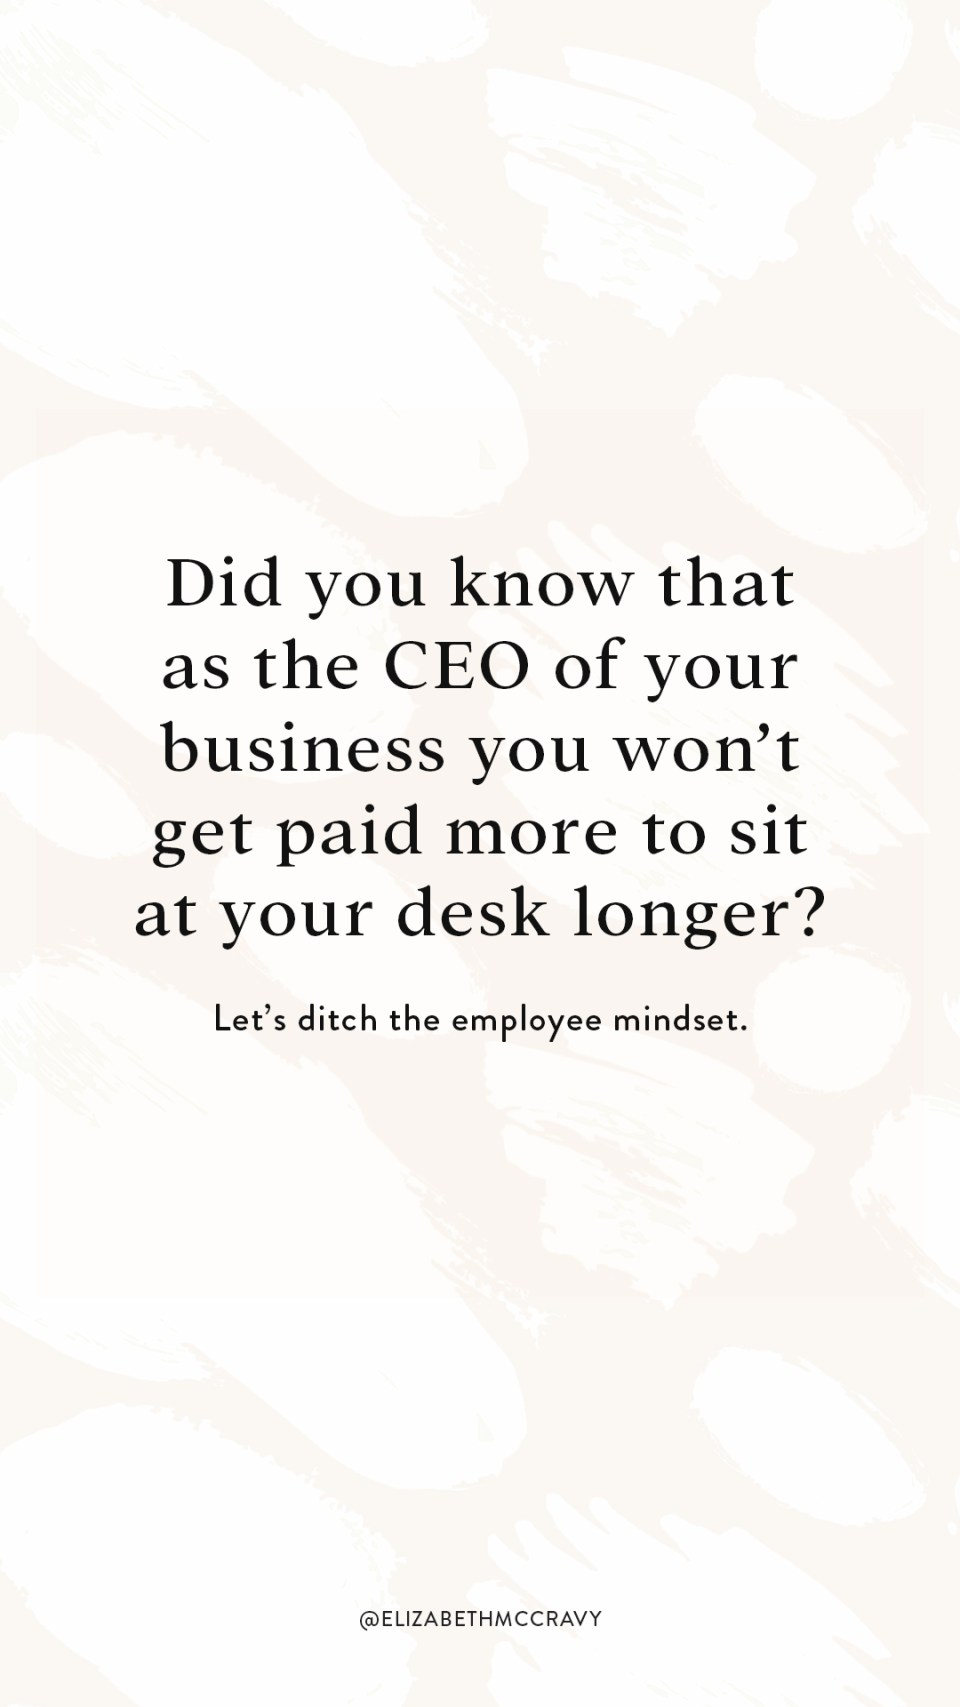 Did you know that as the CEO of your business you won't get paid more to sit at your desk longer? [Let that sink in, because although we know it we often don't act like it.] Do you know that when a task takes more time, it doesn't mean more money? Those minutes spent doing pointless tasks, scrolling on the gram, and procrastination are not only NOT moving your business forward… but, they also are completely wasting your precious time. All because you think you need to sit at your desk longer.